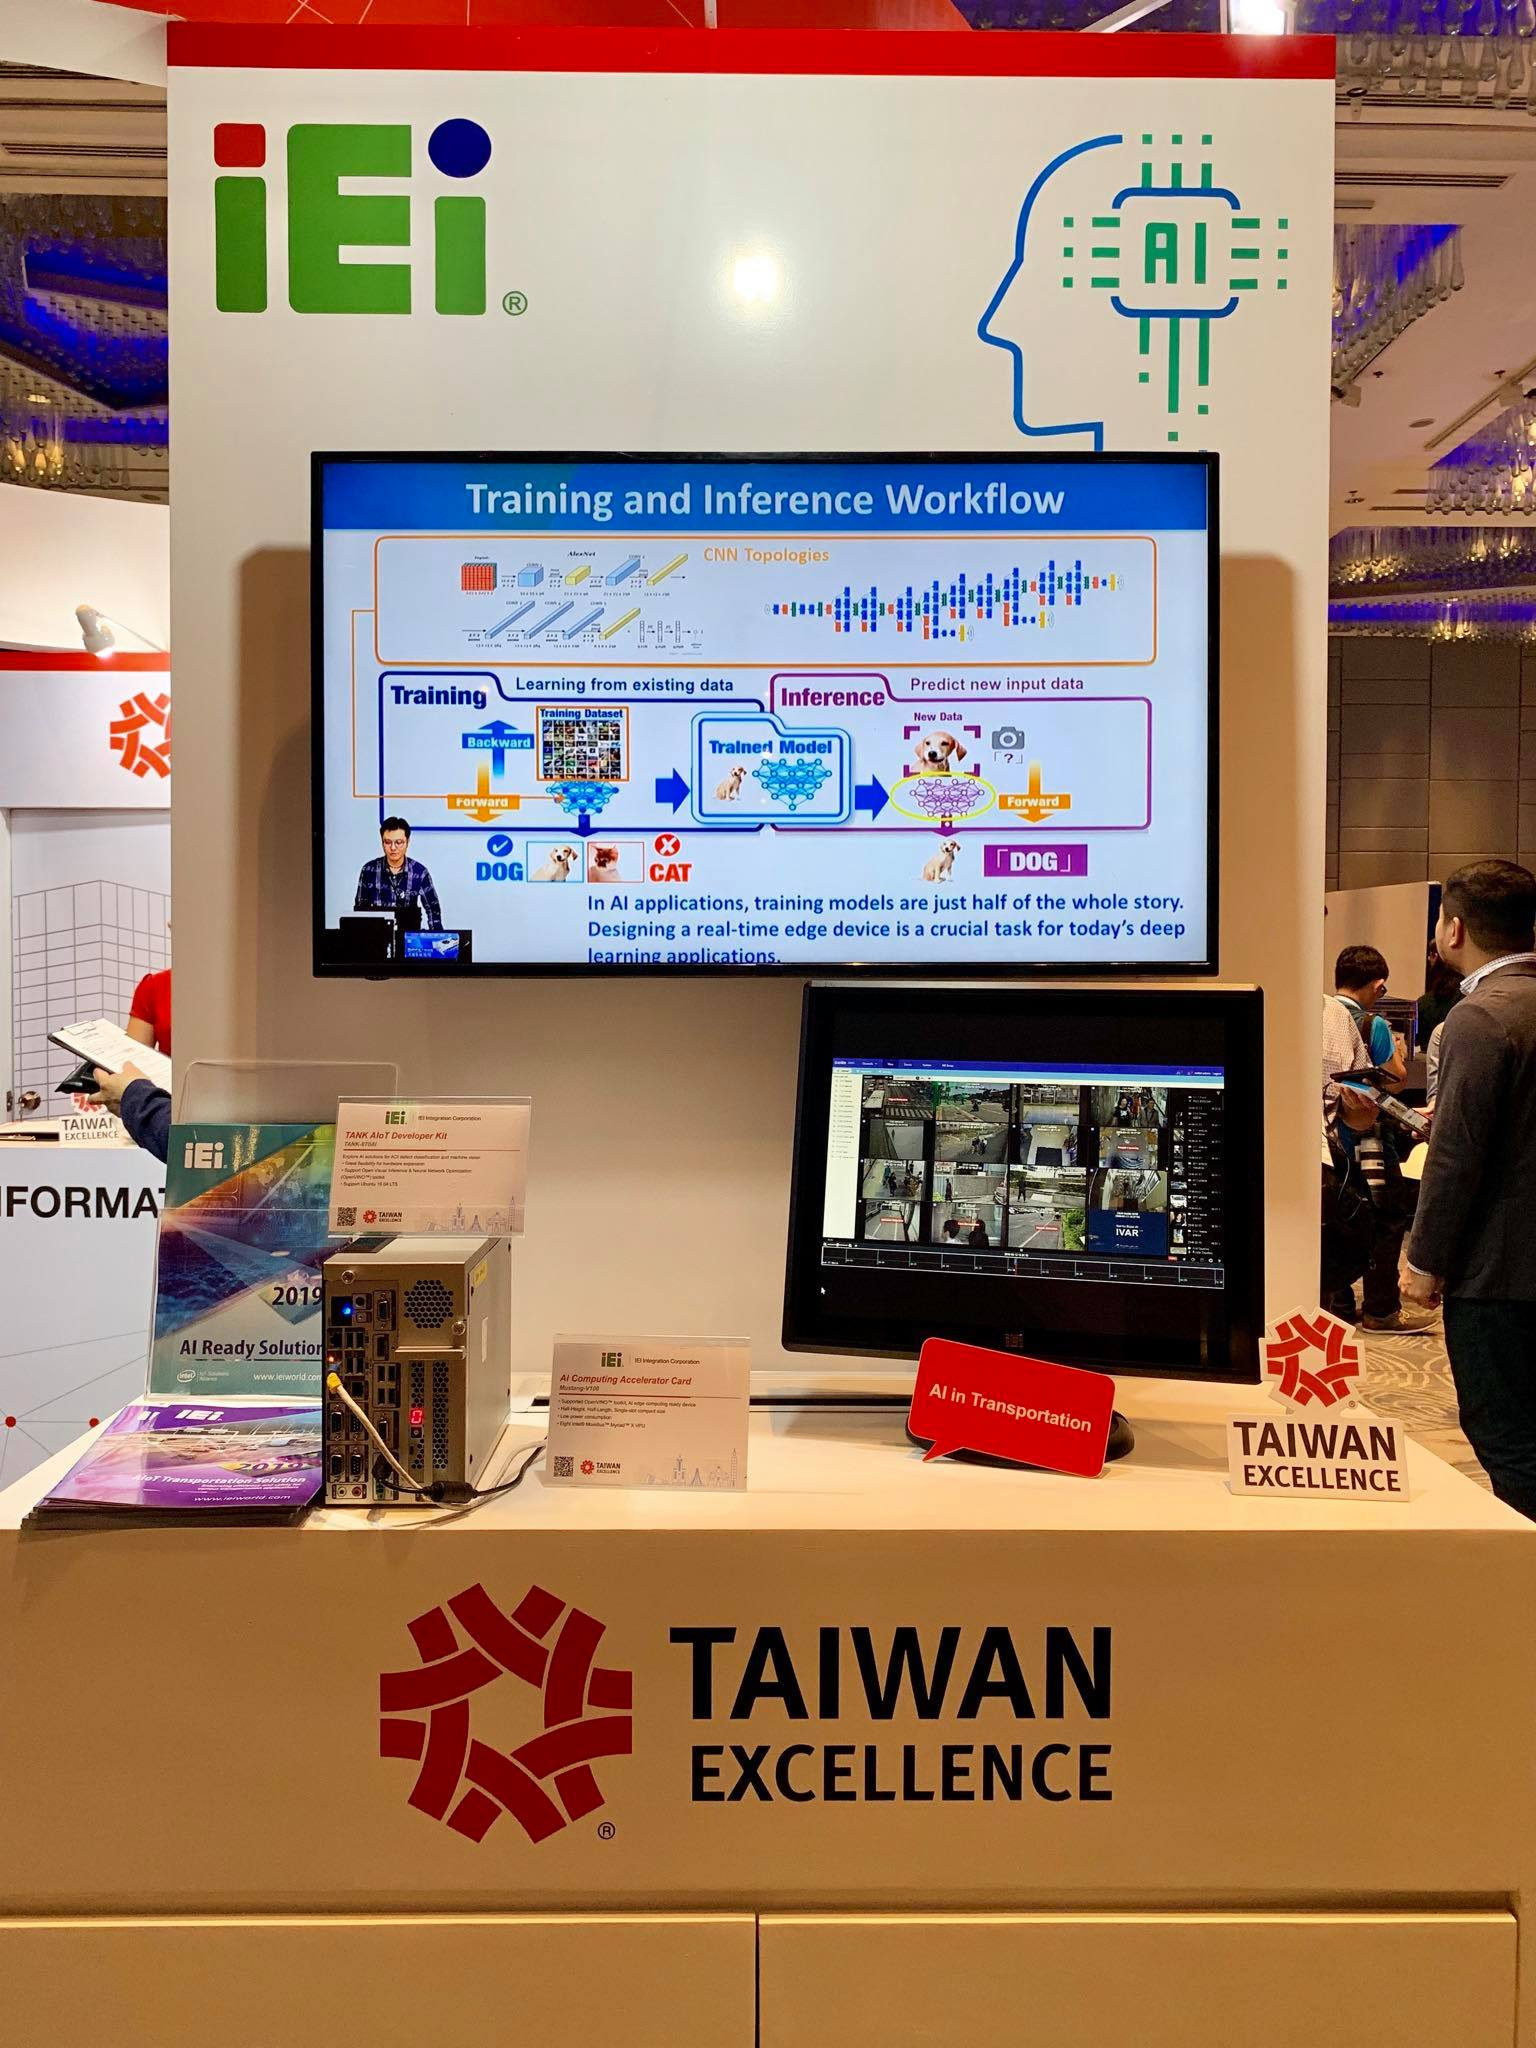 Taiwan Excellence fosters the potential to influence the Ph in the ICT department